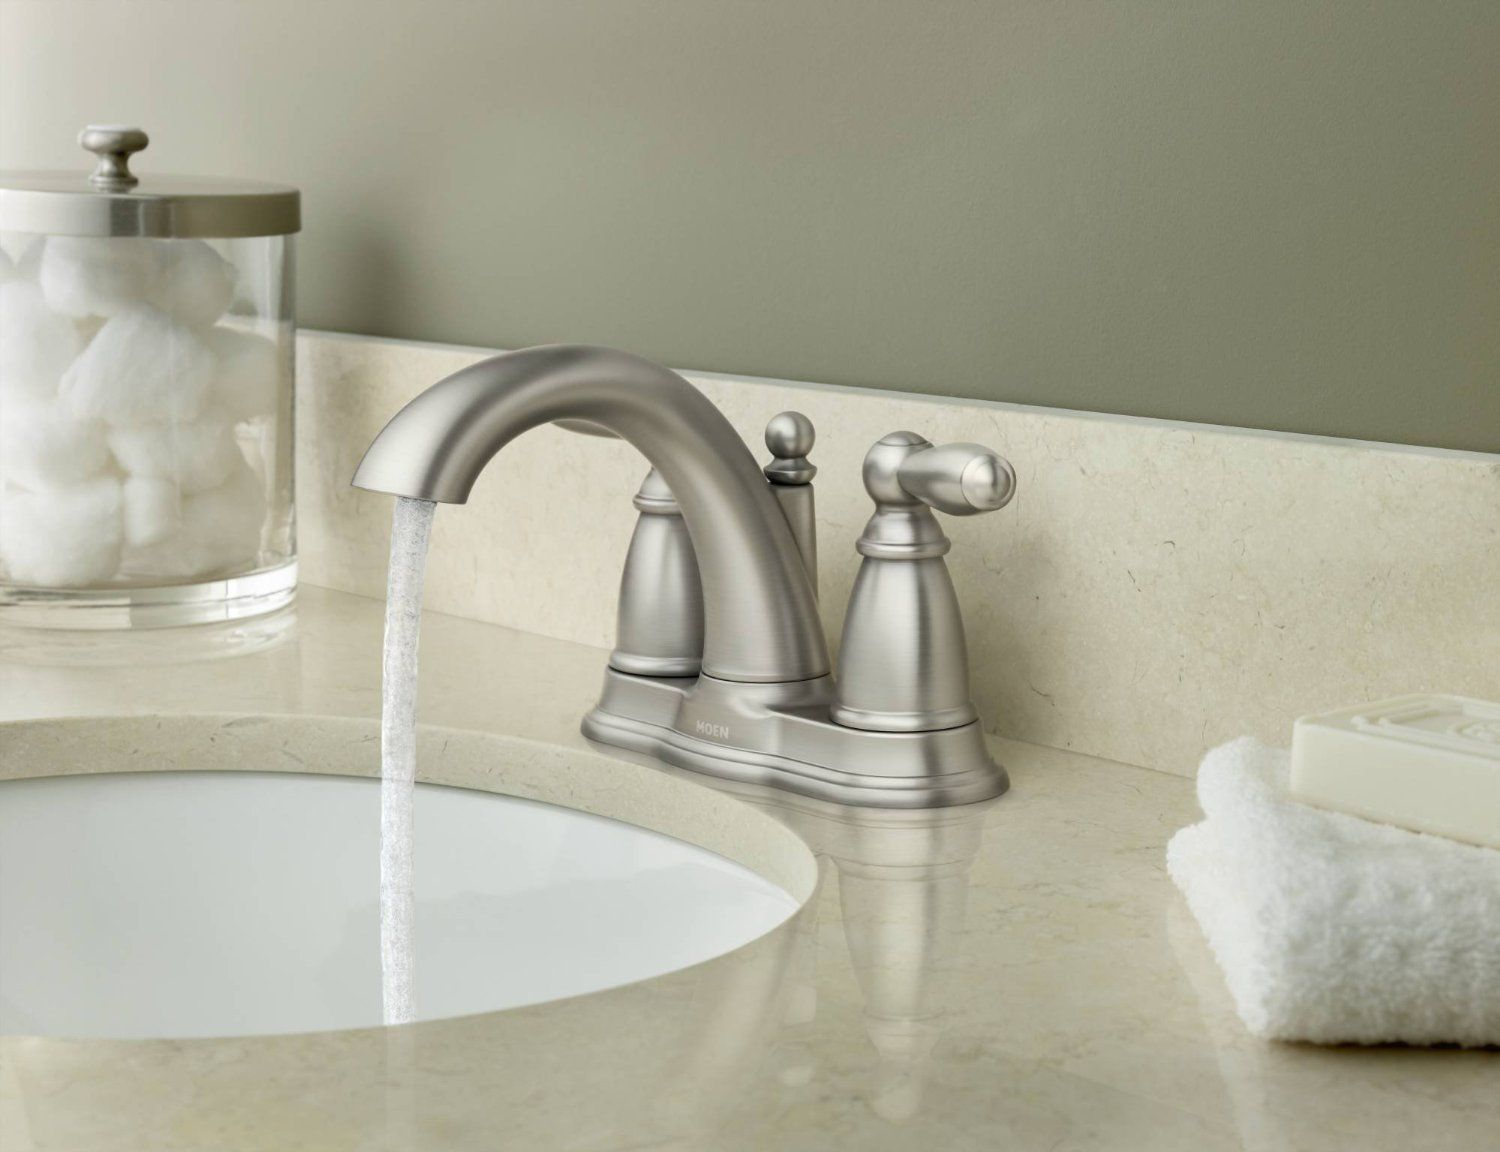 Best Bathroom Faucet Reviews In 2020 With Images Low Arc